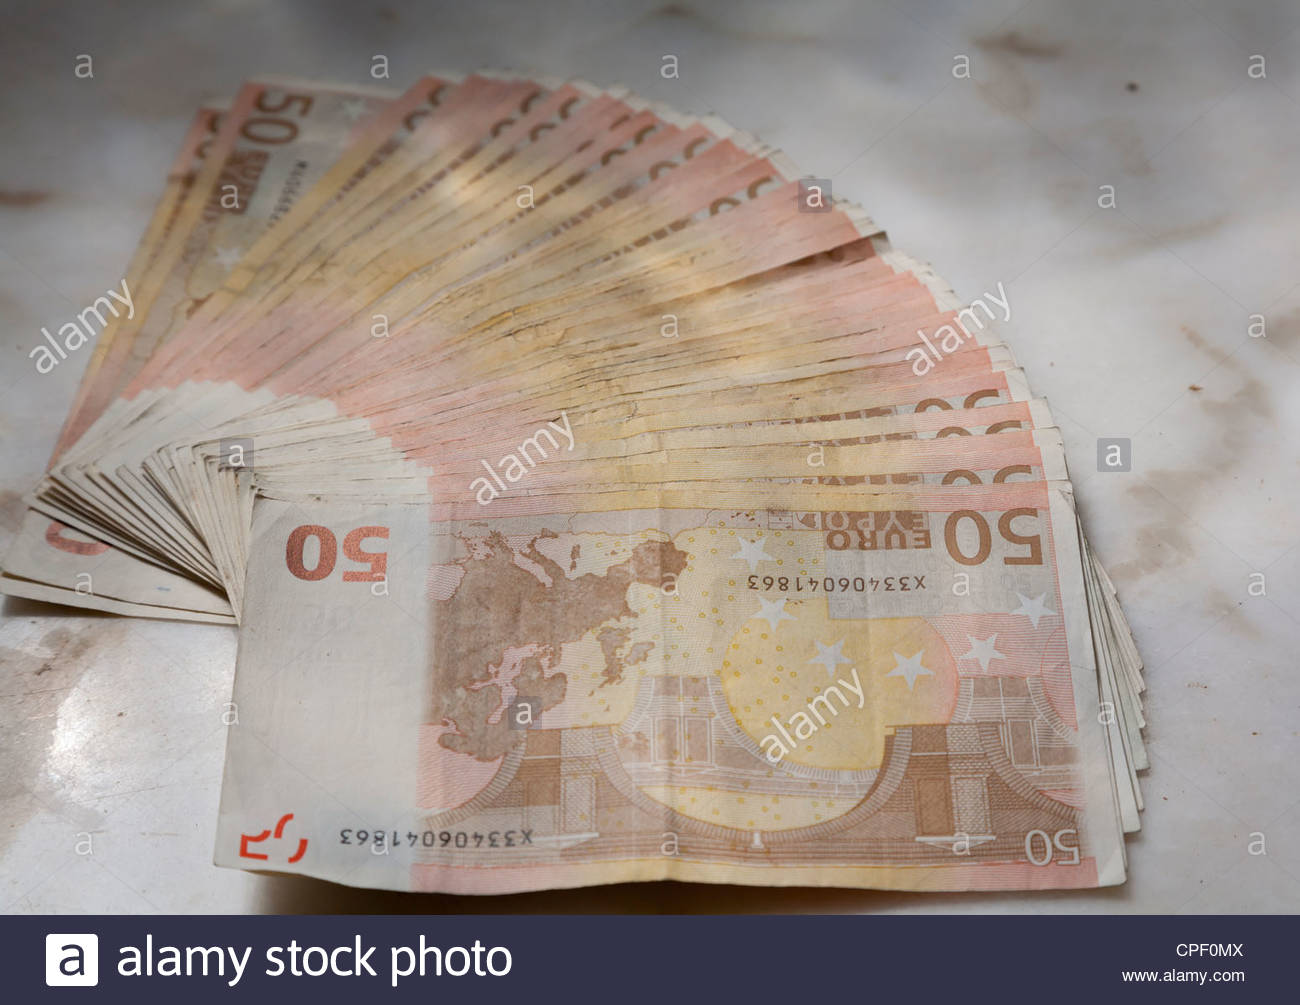 Spread Of 50 Euro Notes On Table Top Stock Photo 48273034 Alamy